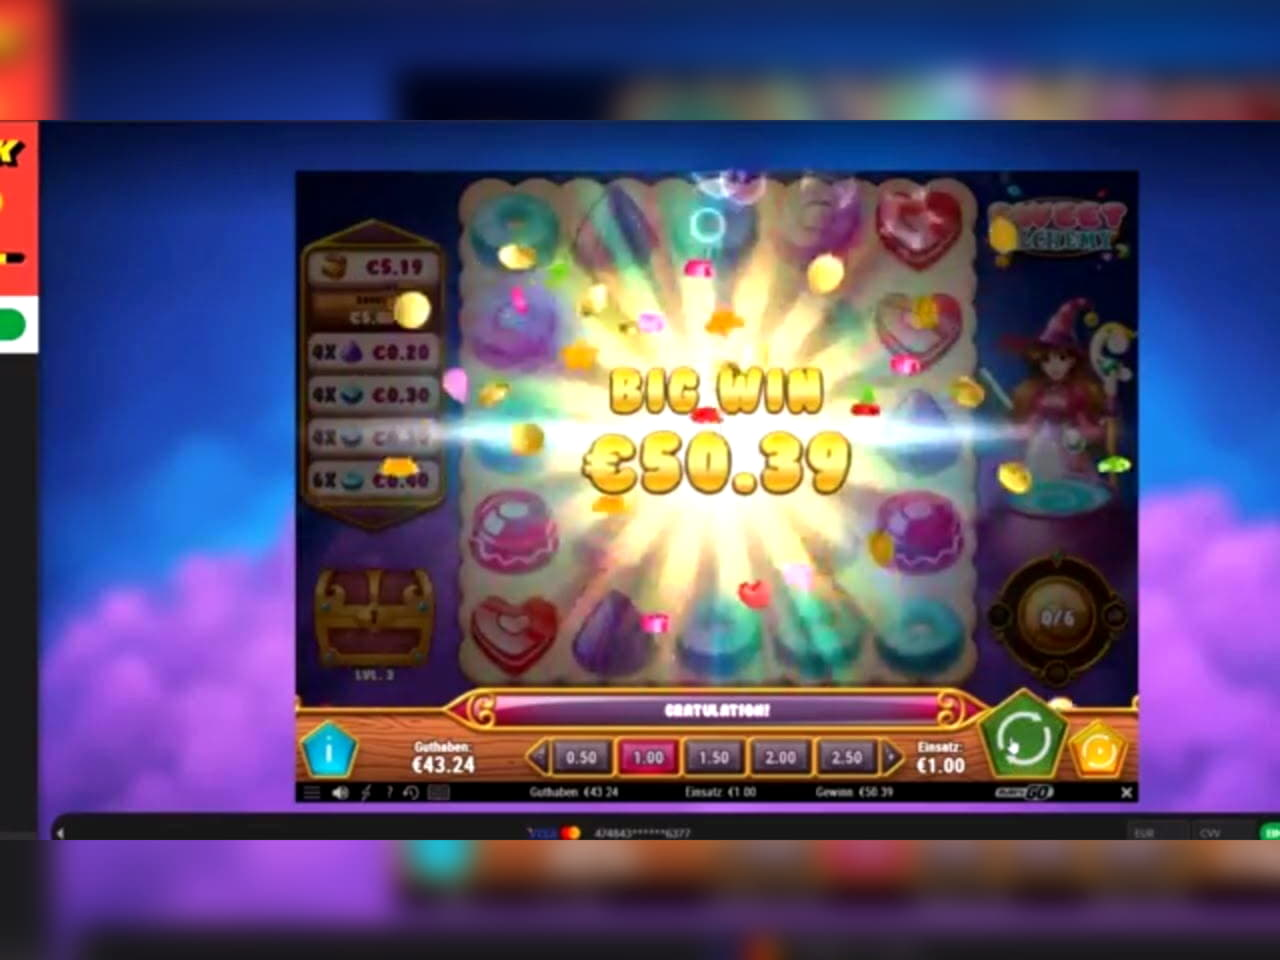 €550 FREE CASINO CHIP at Ruby Fortune Casino